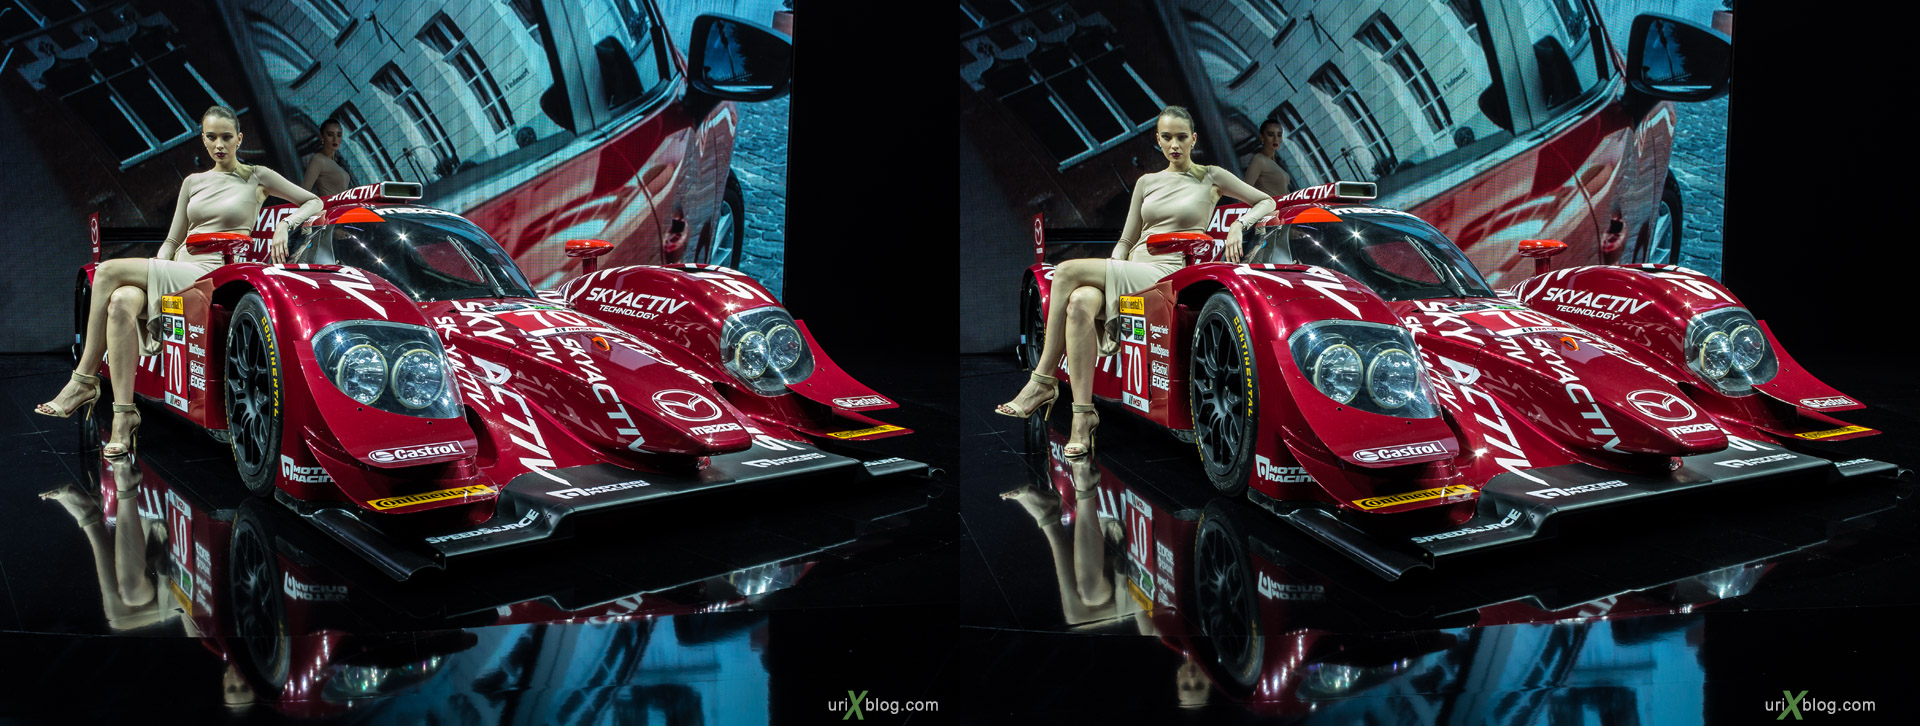 2014, Mazda, Moscow International Automobile Salon, MIAS, Crocus Expo, models, girls, Moscow, Russia, augest, 3D, stereo pair, cross-eyed, crossview, cross view stereo pair, stereoscopic